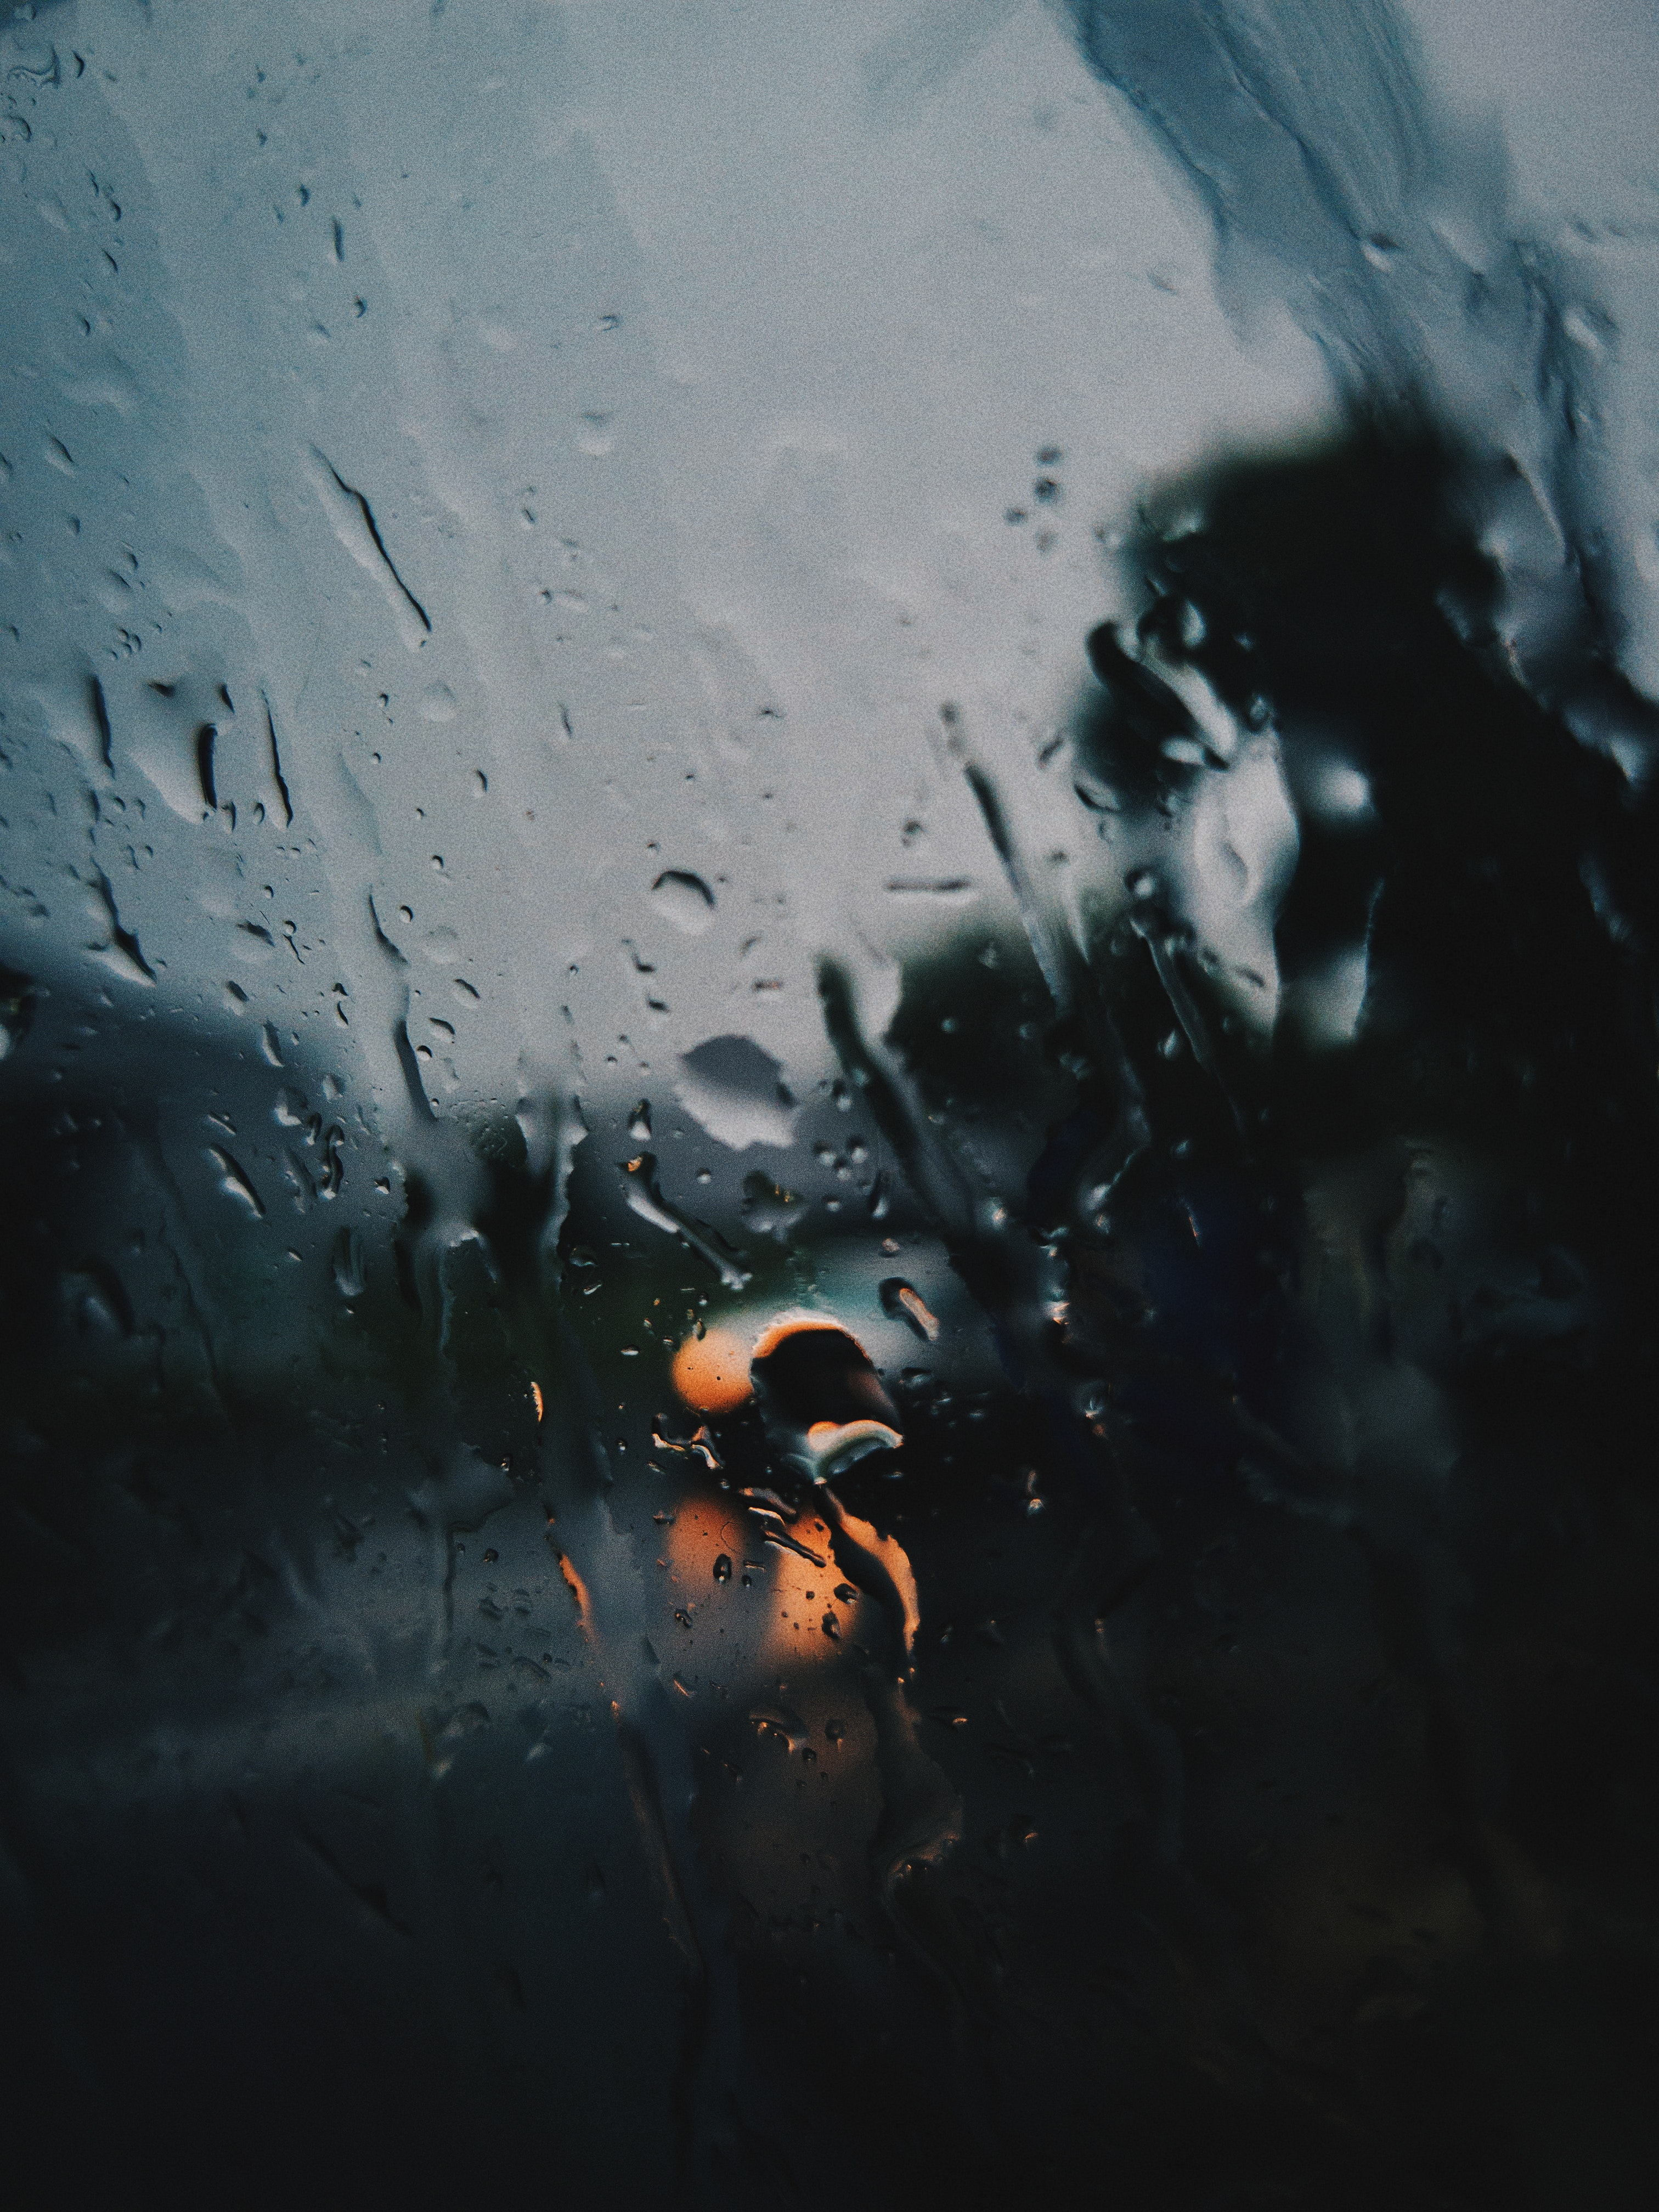 Shallow focus photography of rain on the window